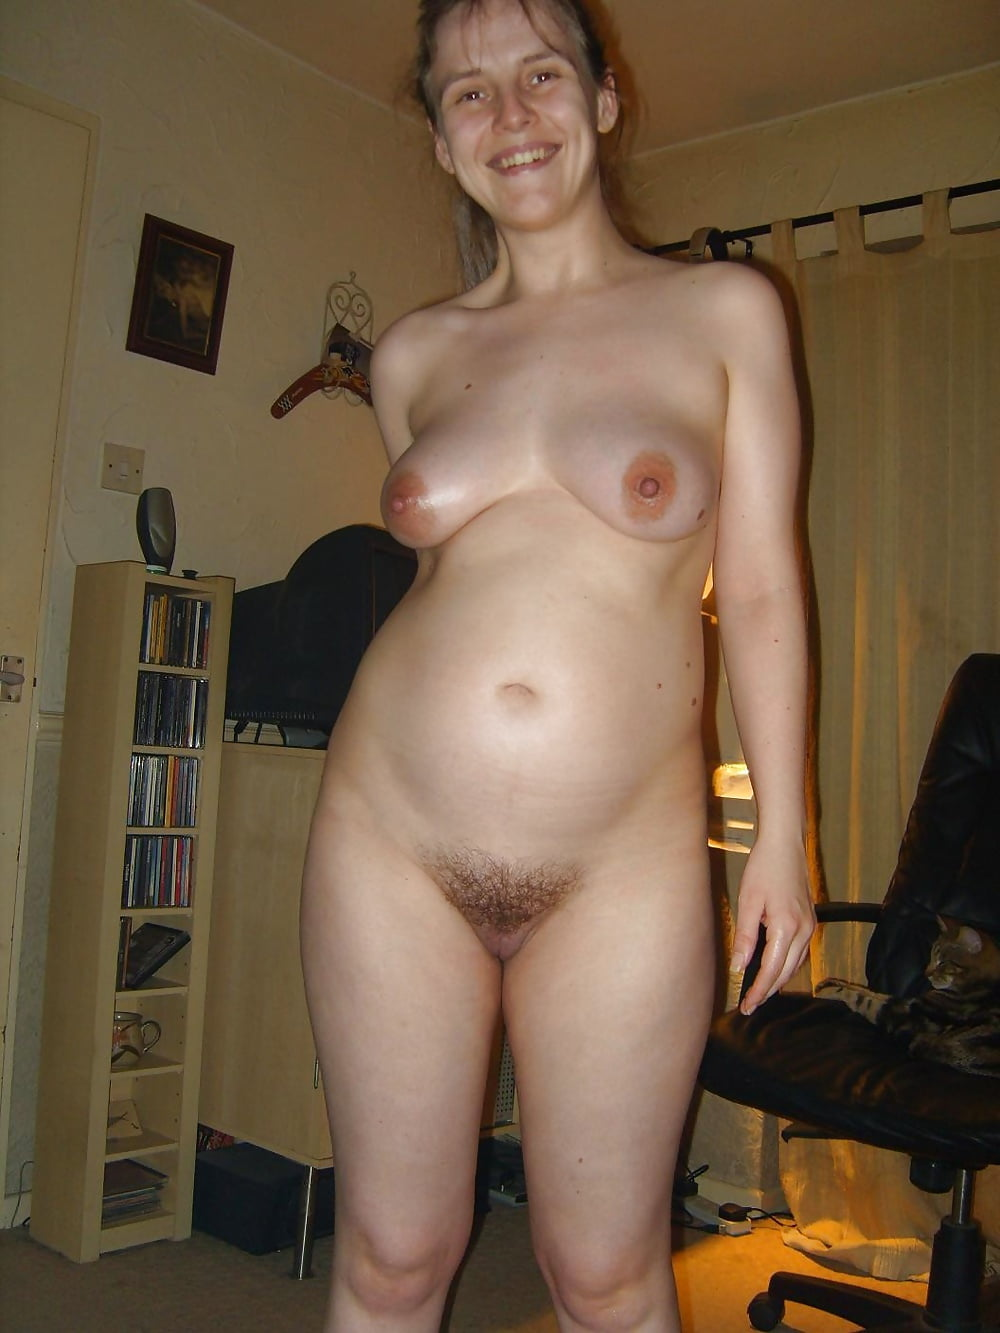 bitch-nude-naked-pregnant-wife